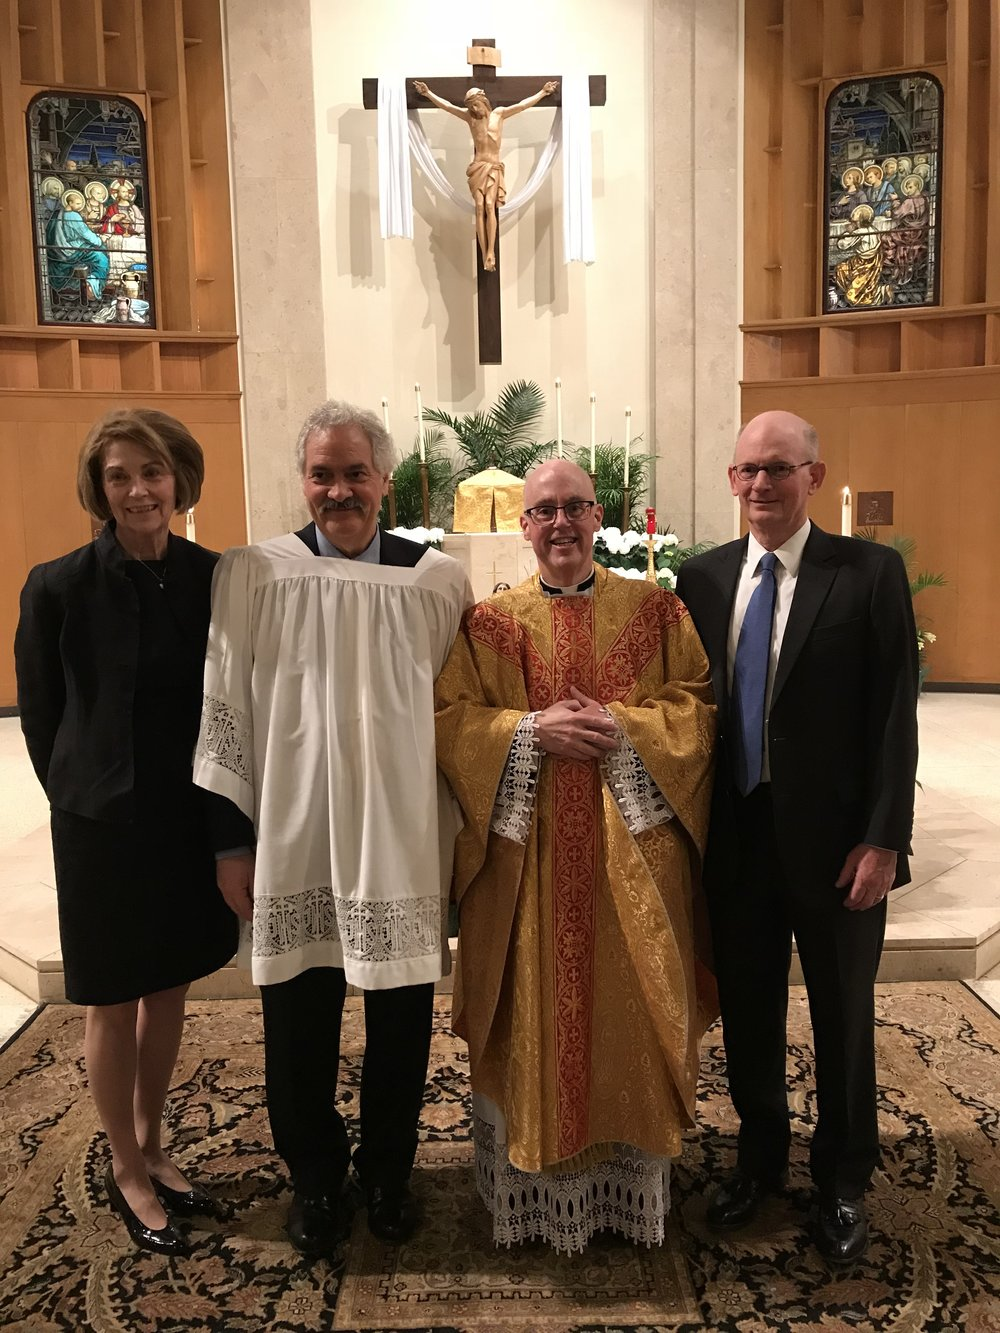 Alaedin Christopher Behbehani was baptized a Catholic at the Easter Vigil! He is prictured here in his baptismal gown with Fr. Healey and his sponsors, Ron and MaryAnne Weaver.